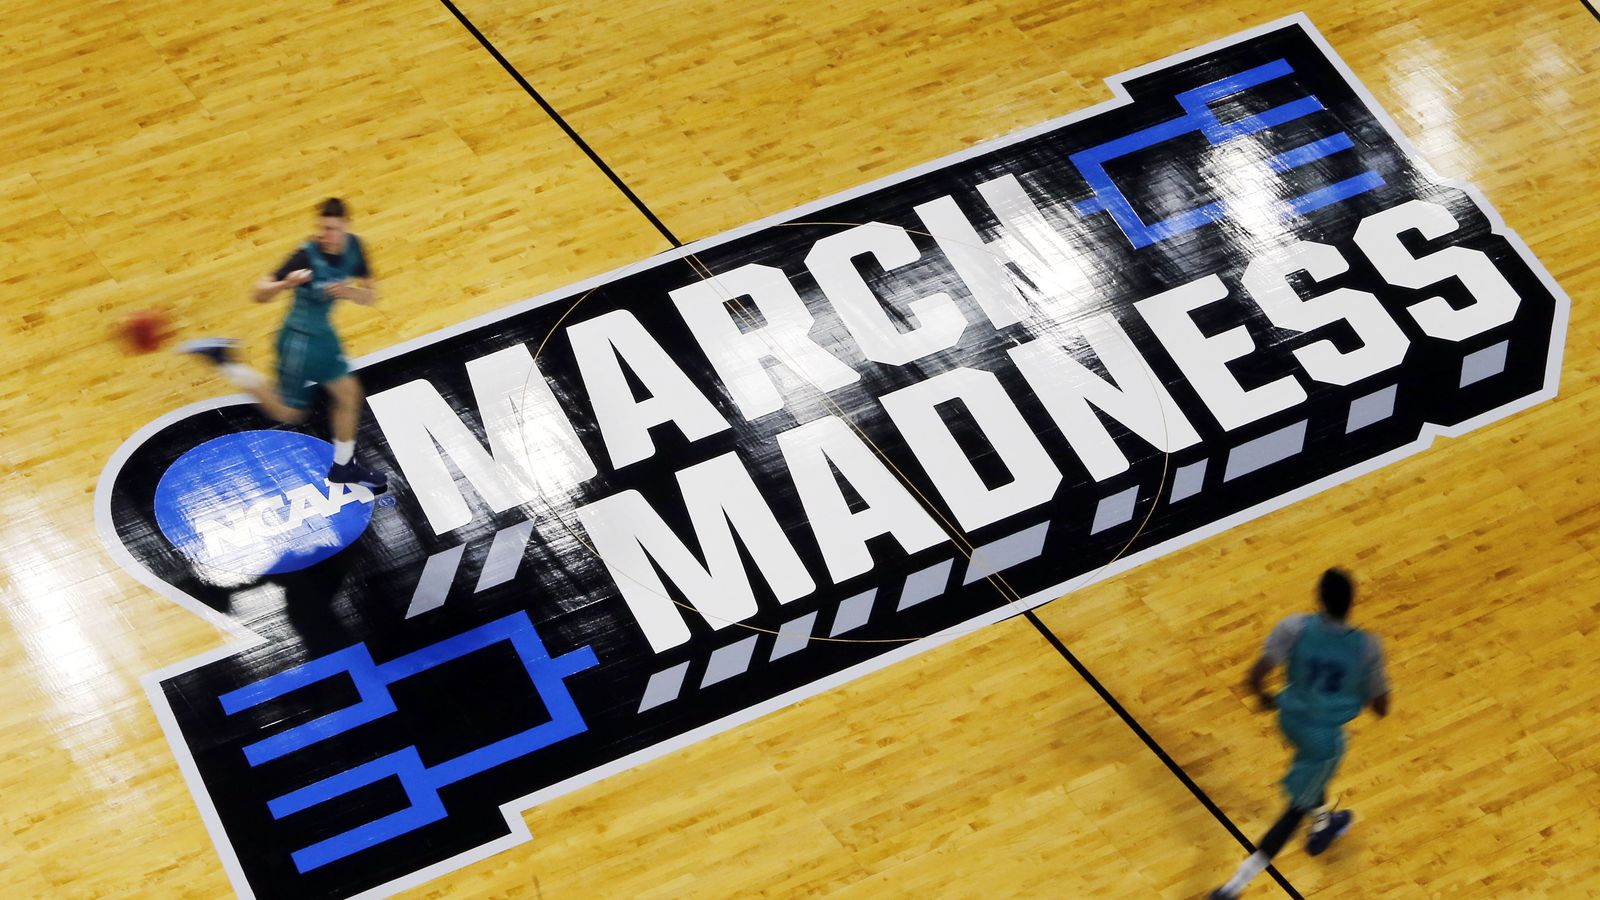 Uk Basketball: March Madness 2016 Streaming: How To Watch The NCAA